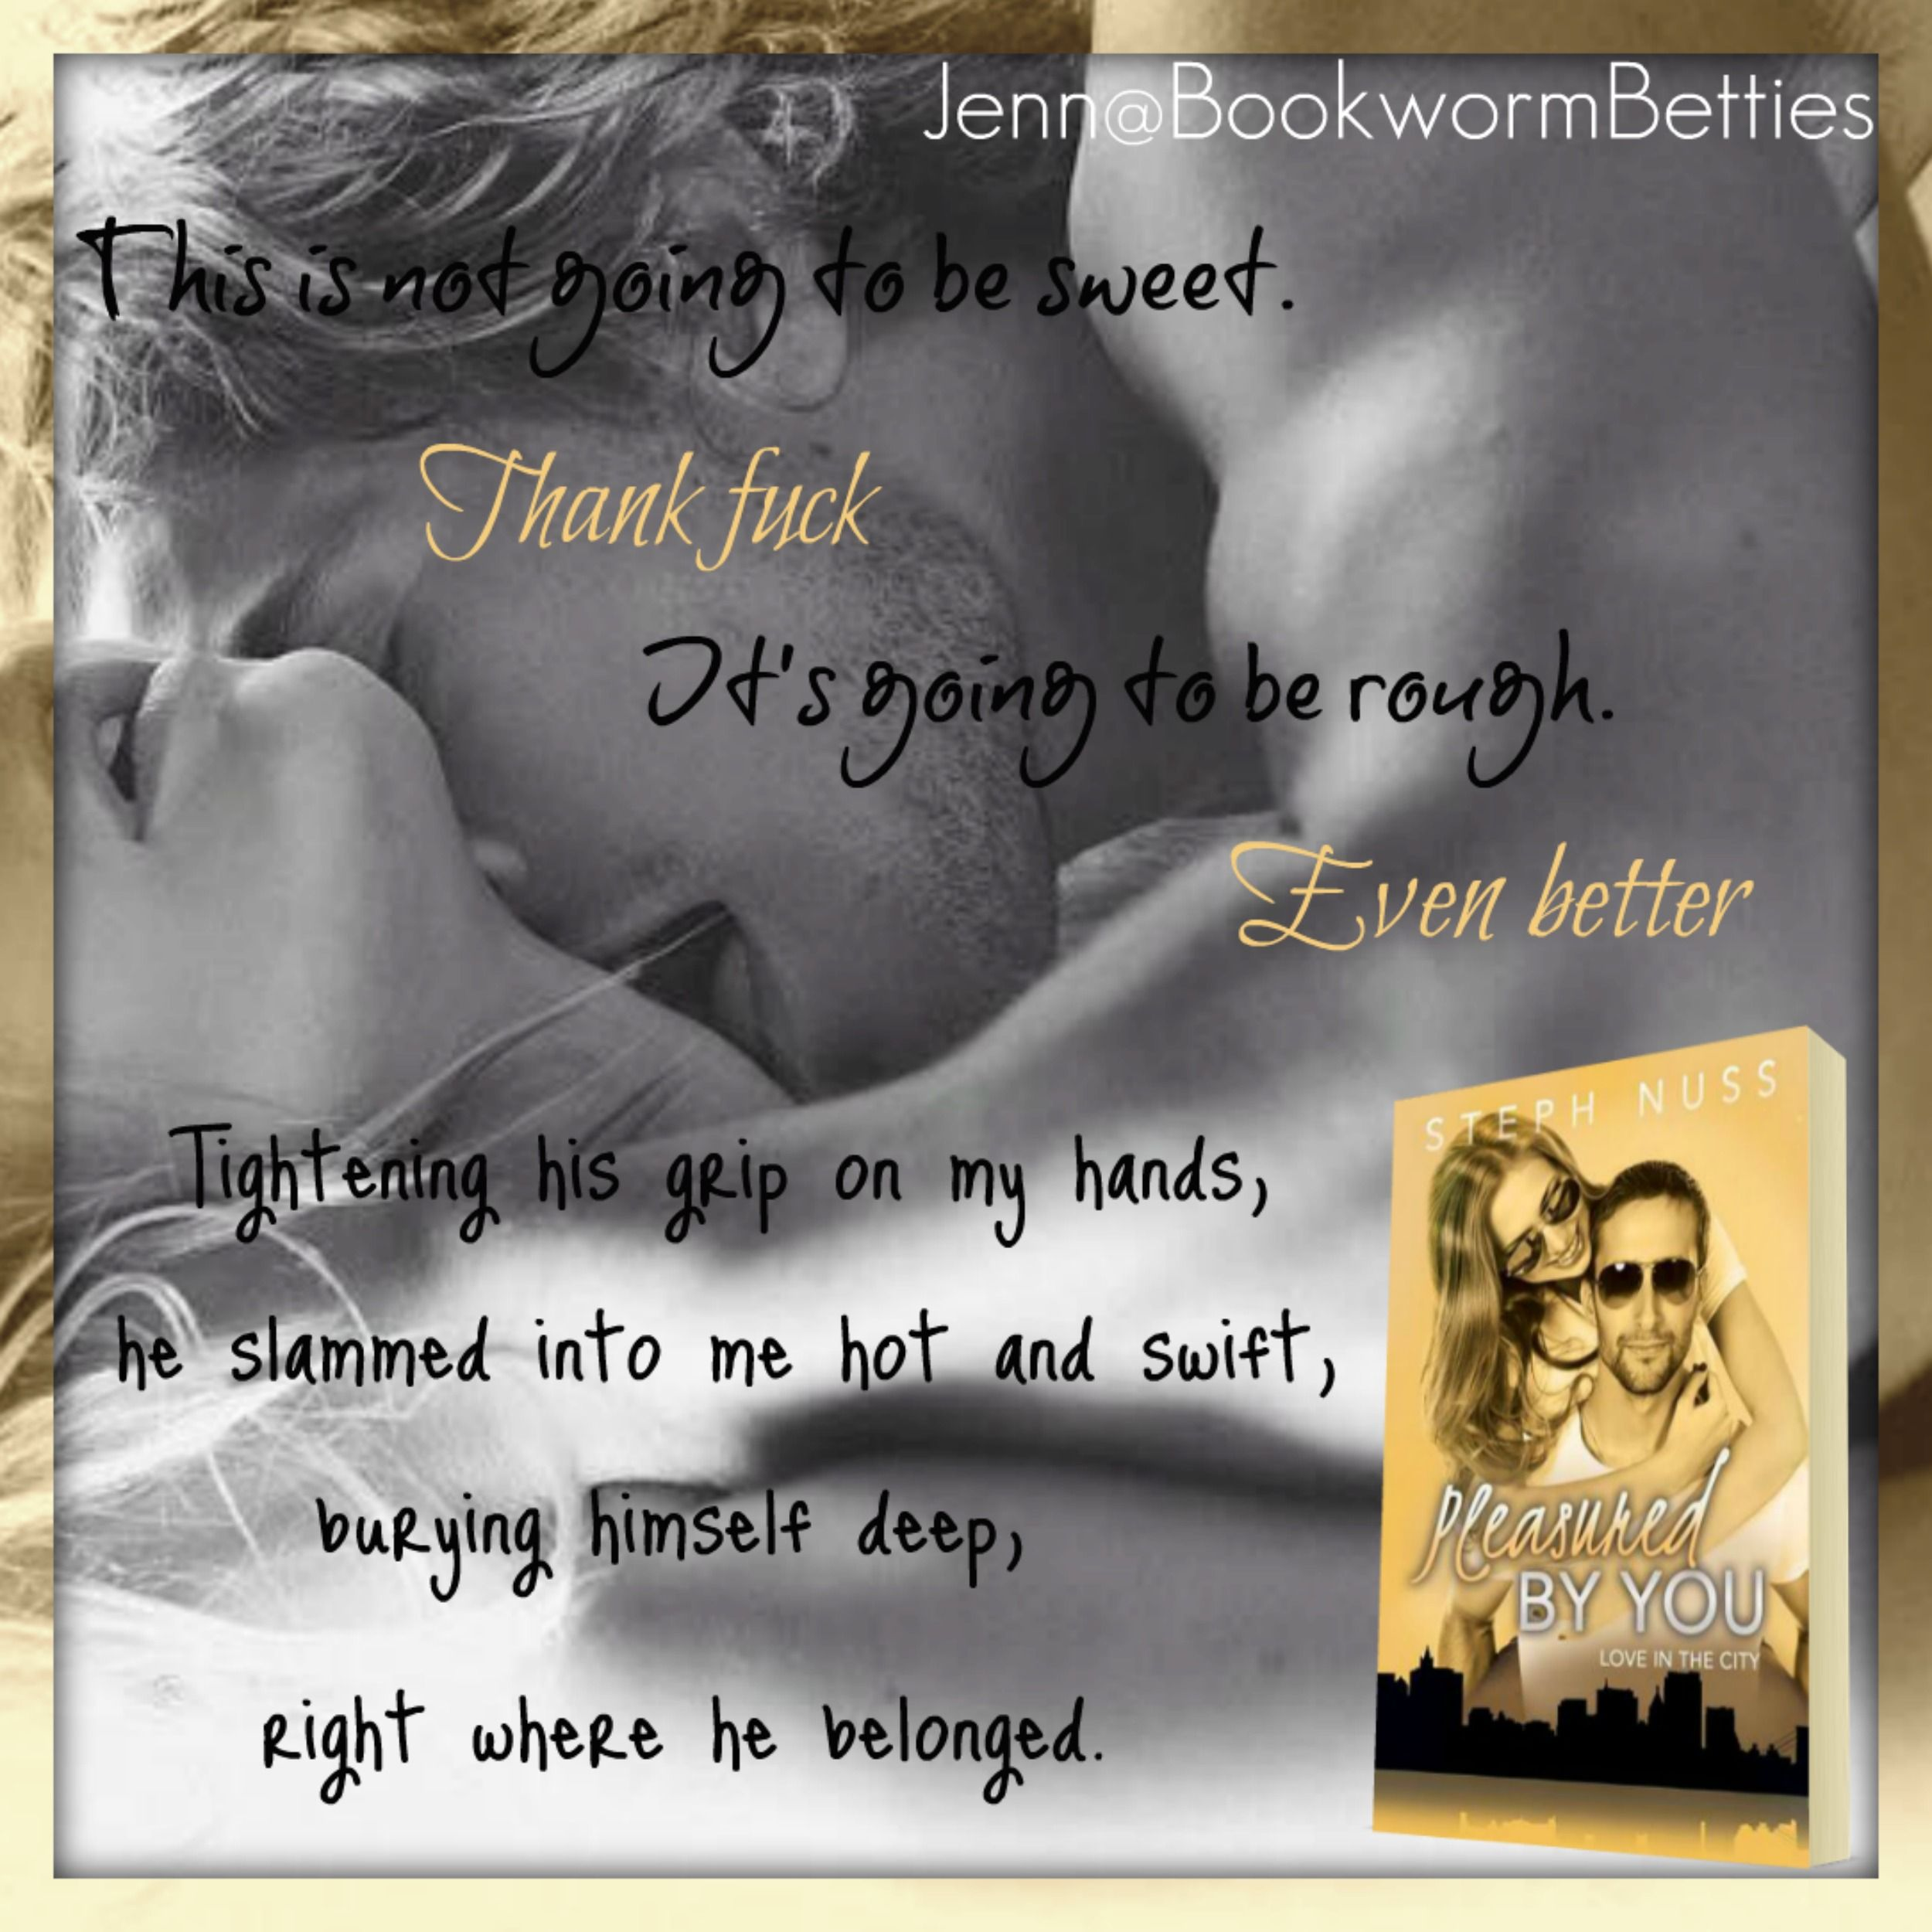 Pleasured by You (Love in the City, #3)  by Steph Nuss